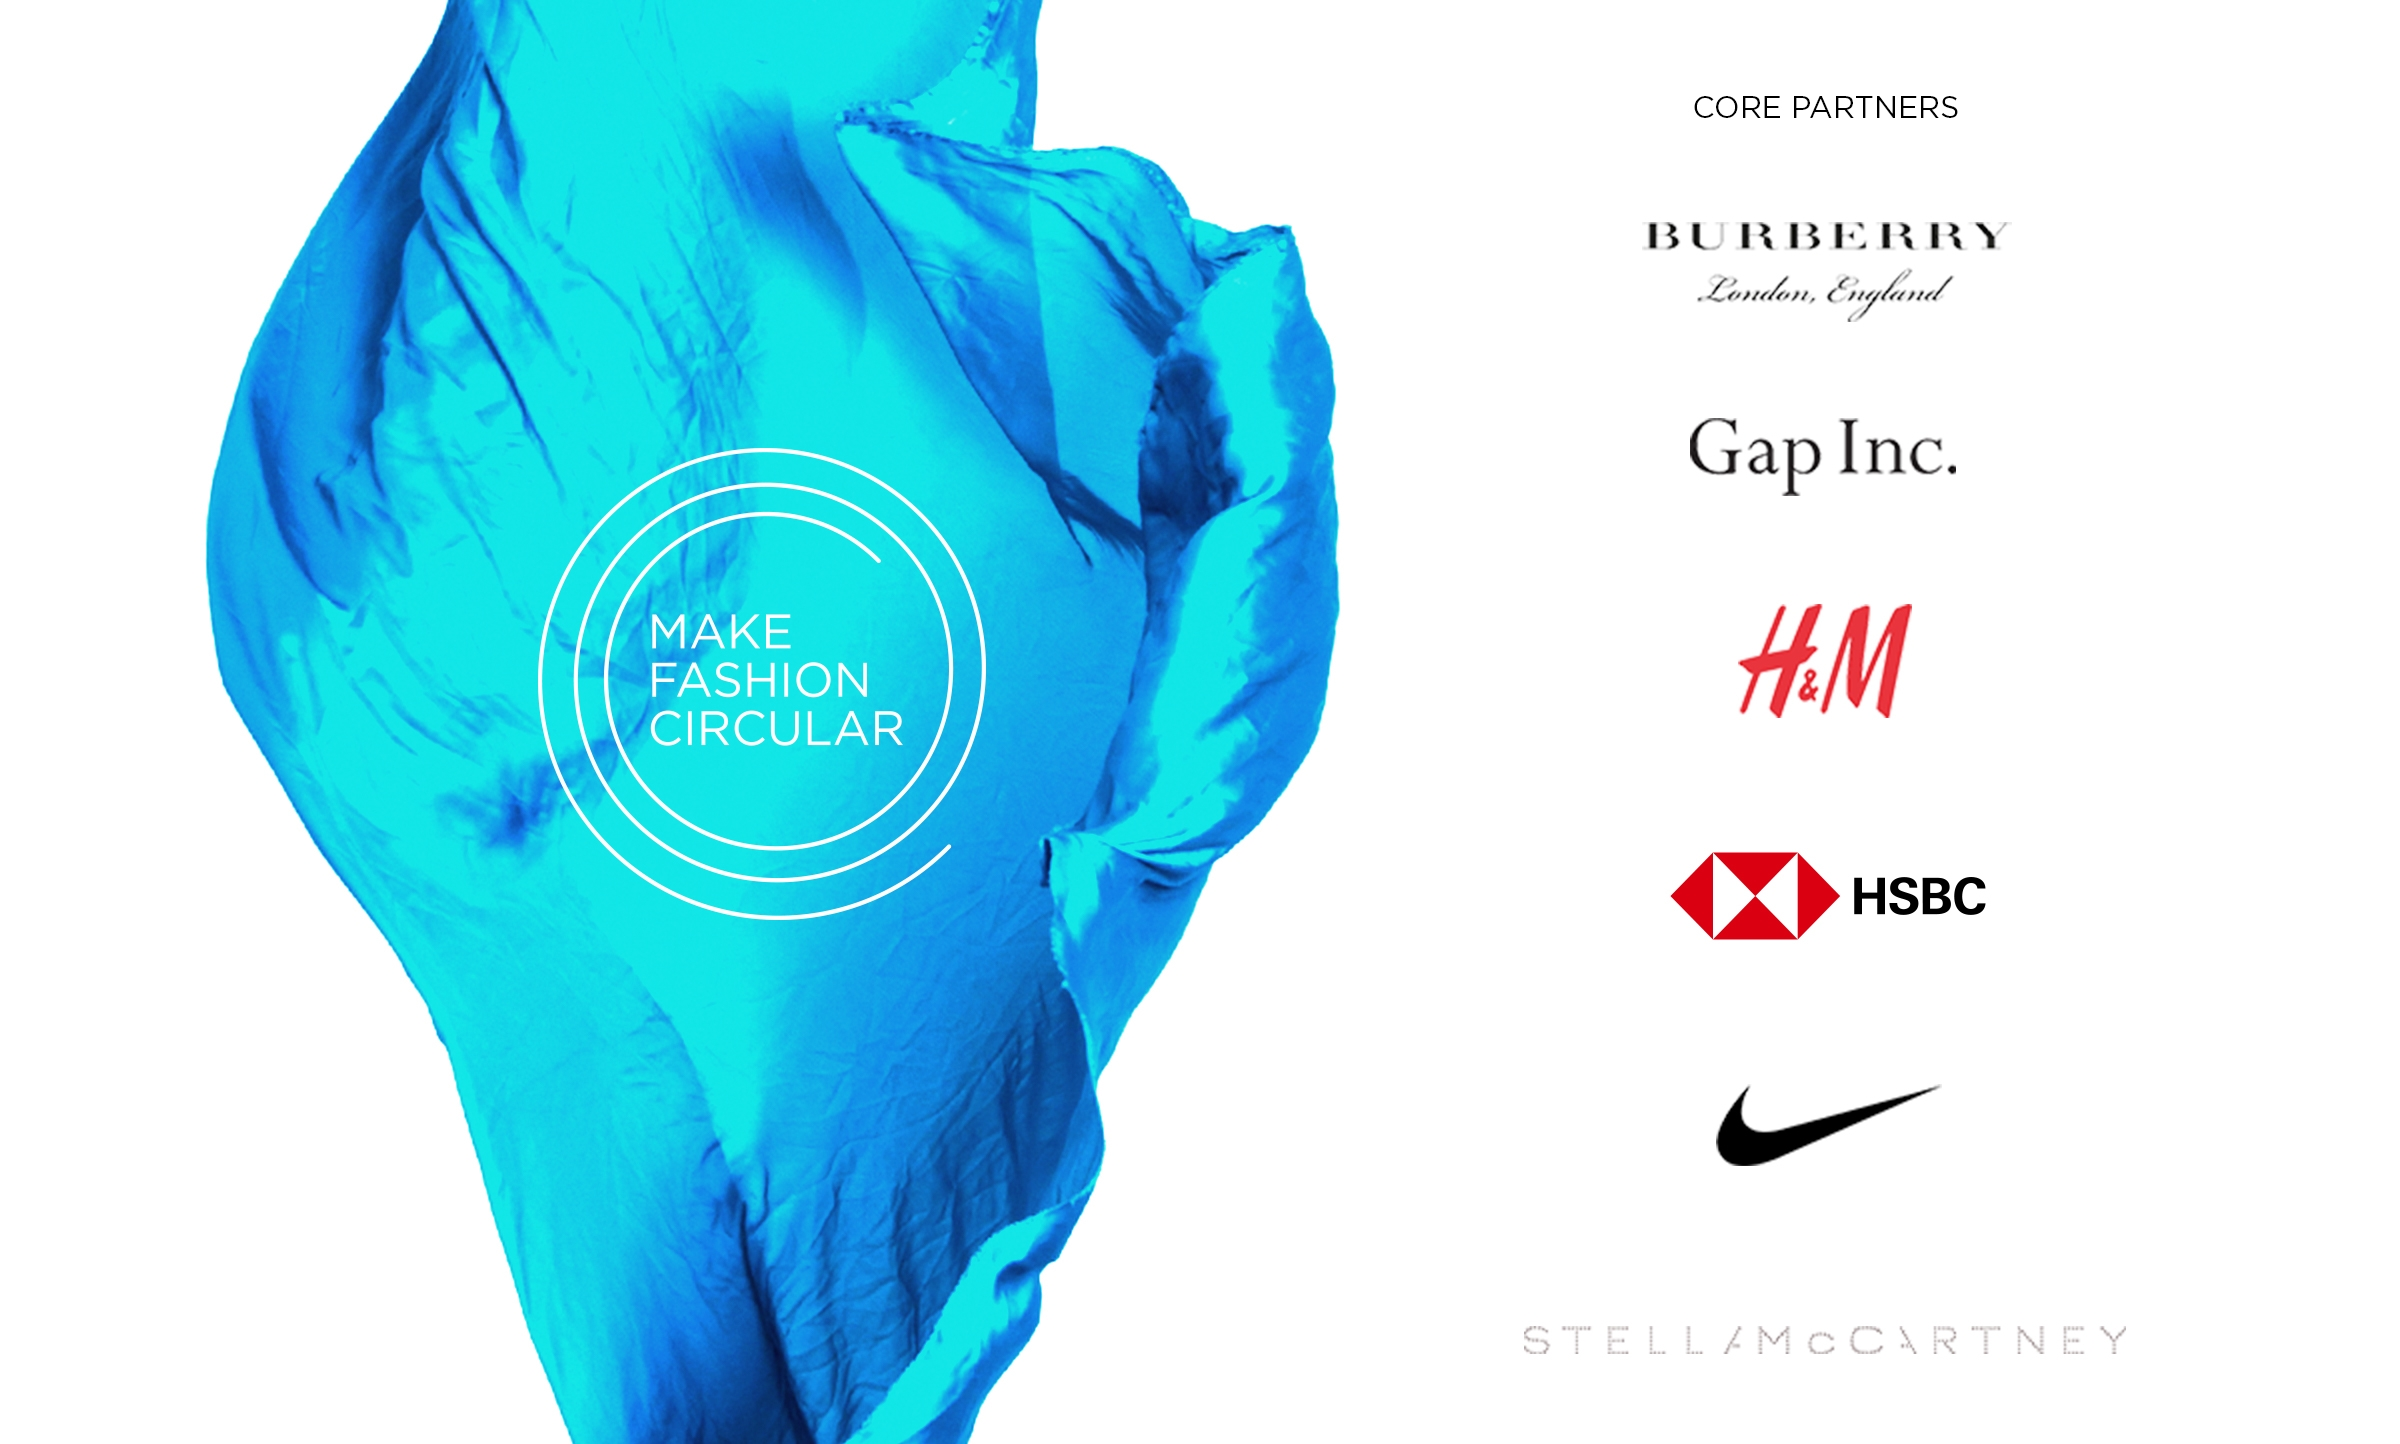 1457eab5b7 Industry leaders join forces to Make Fashion Circular